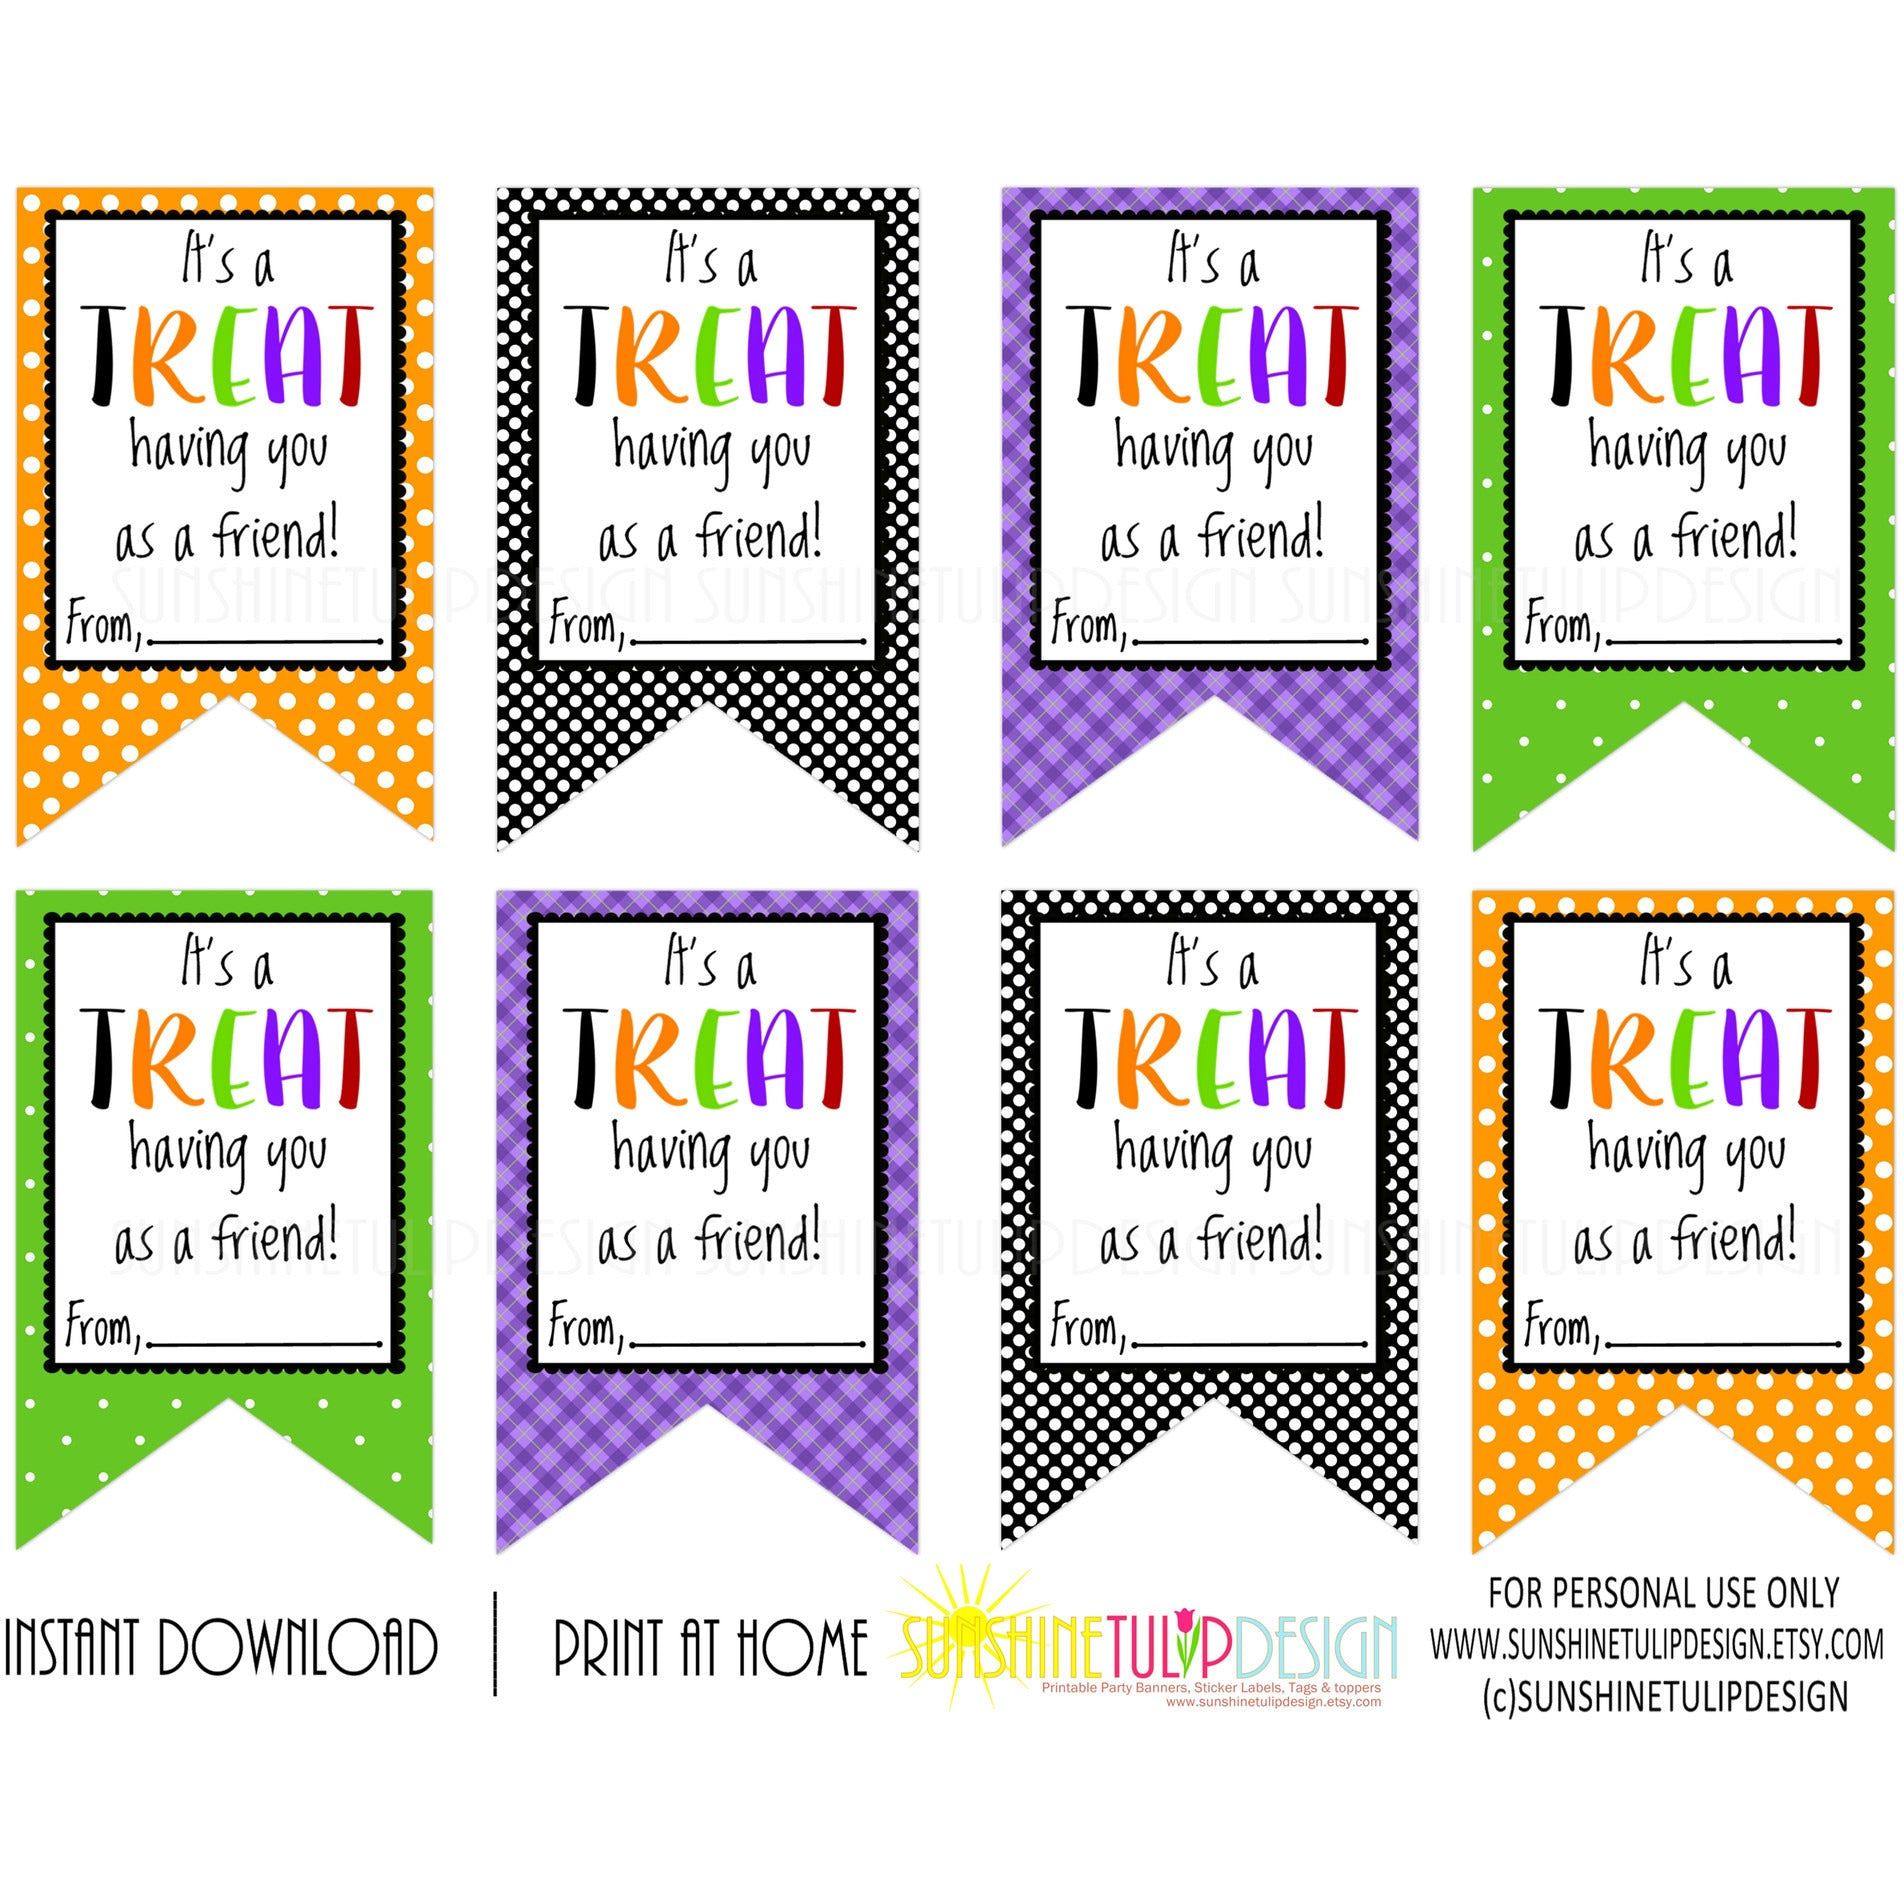 Printable Halloween Gift Tags Itu0027s a TREAT Having You as a Friend Halloween Gift Tags by SUNSHINETULIPDESIGN  sc 1 st  Sunshinetulipdesign & Printable Halloween Gift Tags Itu0027s a TREAT Having You as a Friend ...